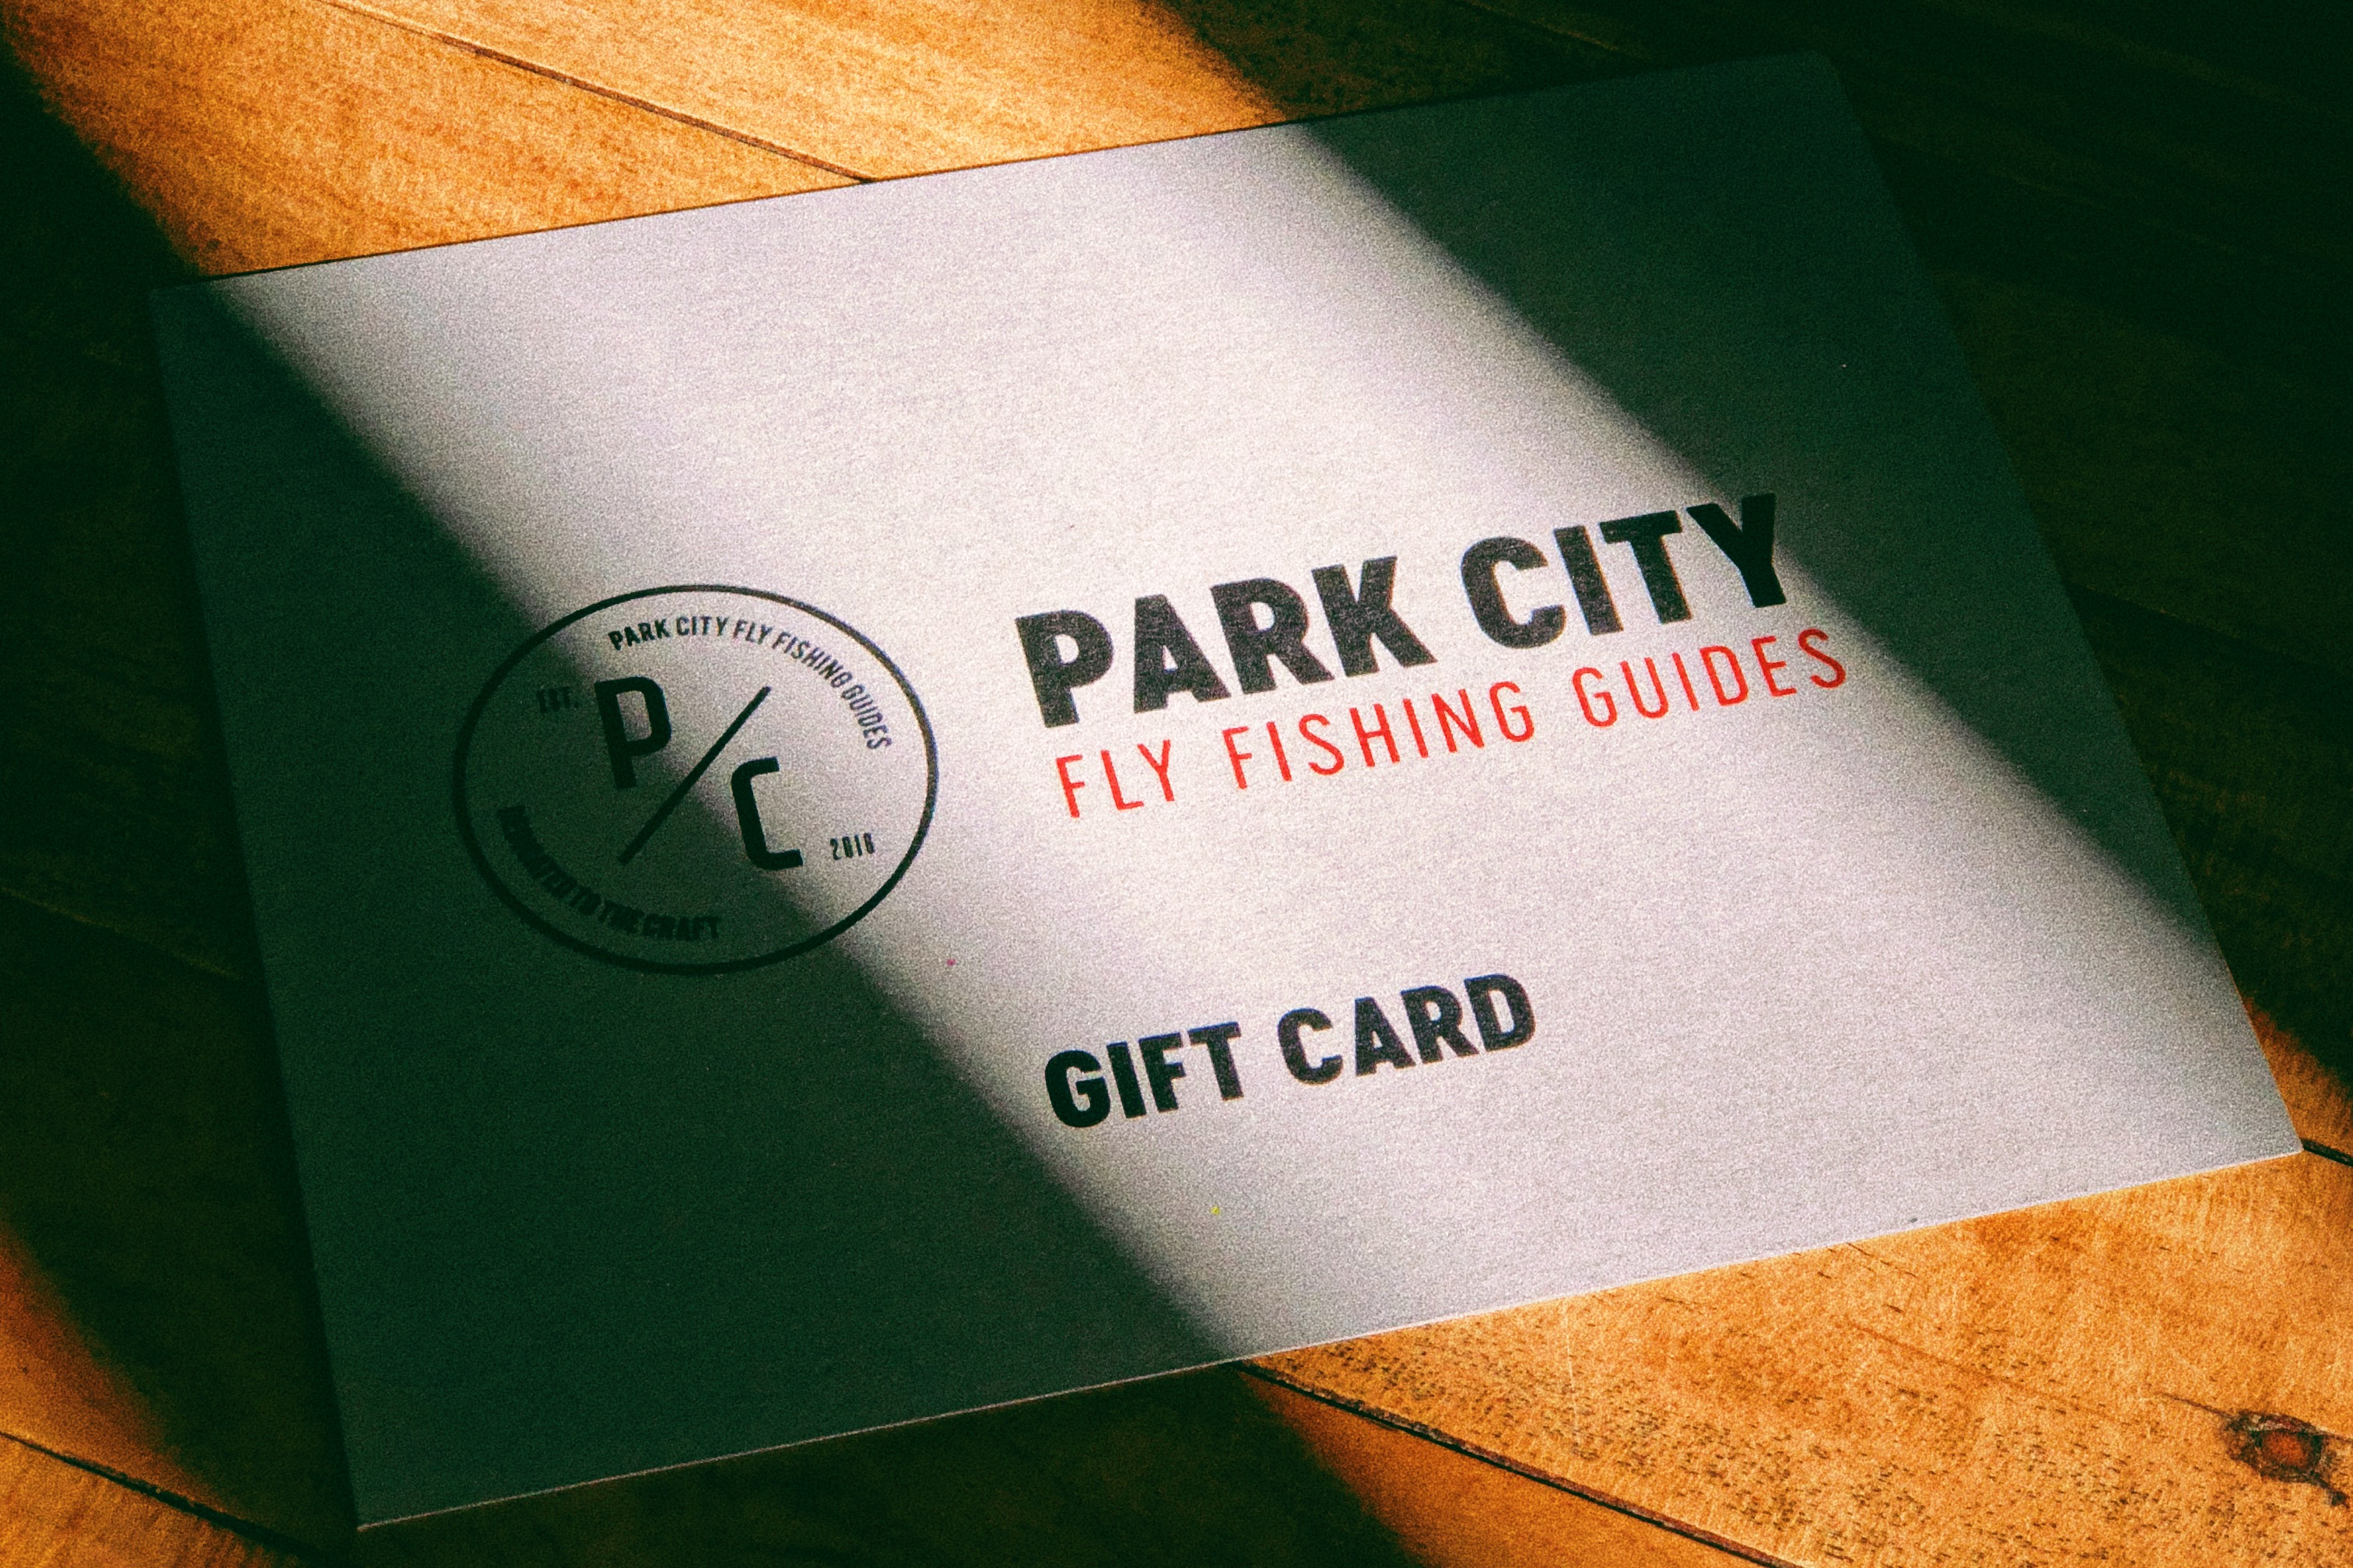 Park City Fly Fishing Guides Gift Certificate